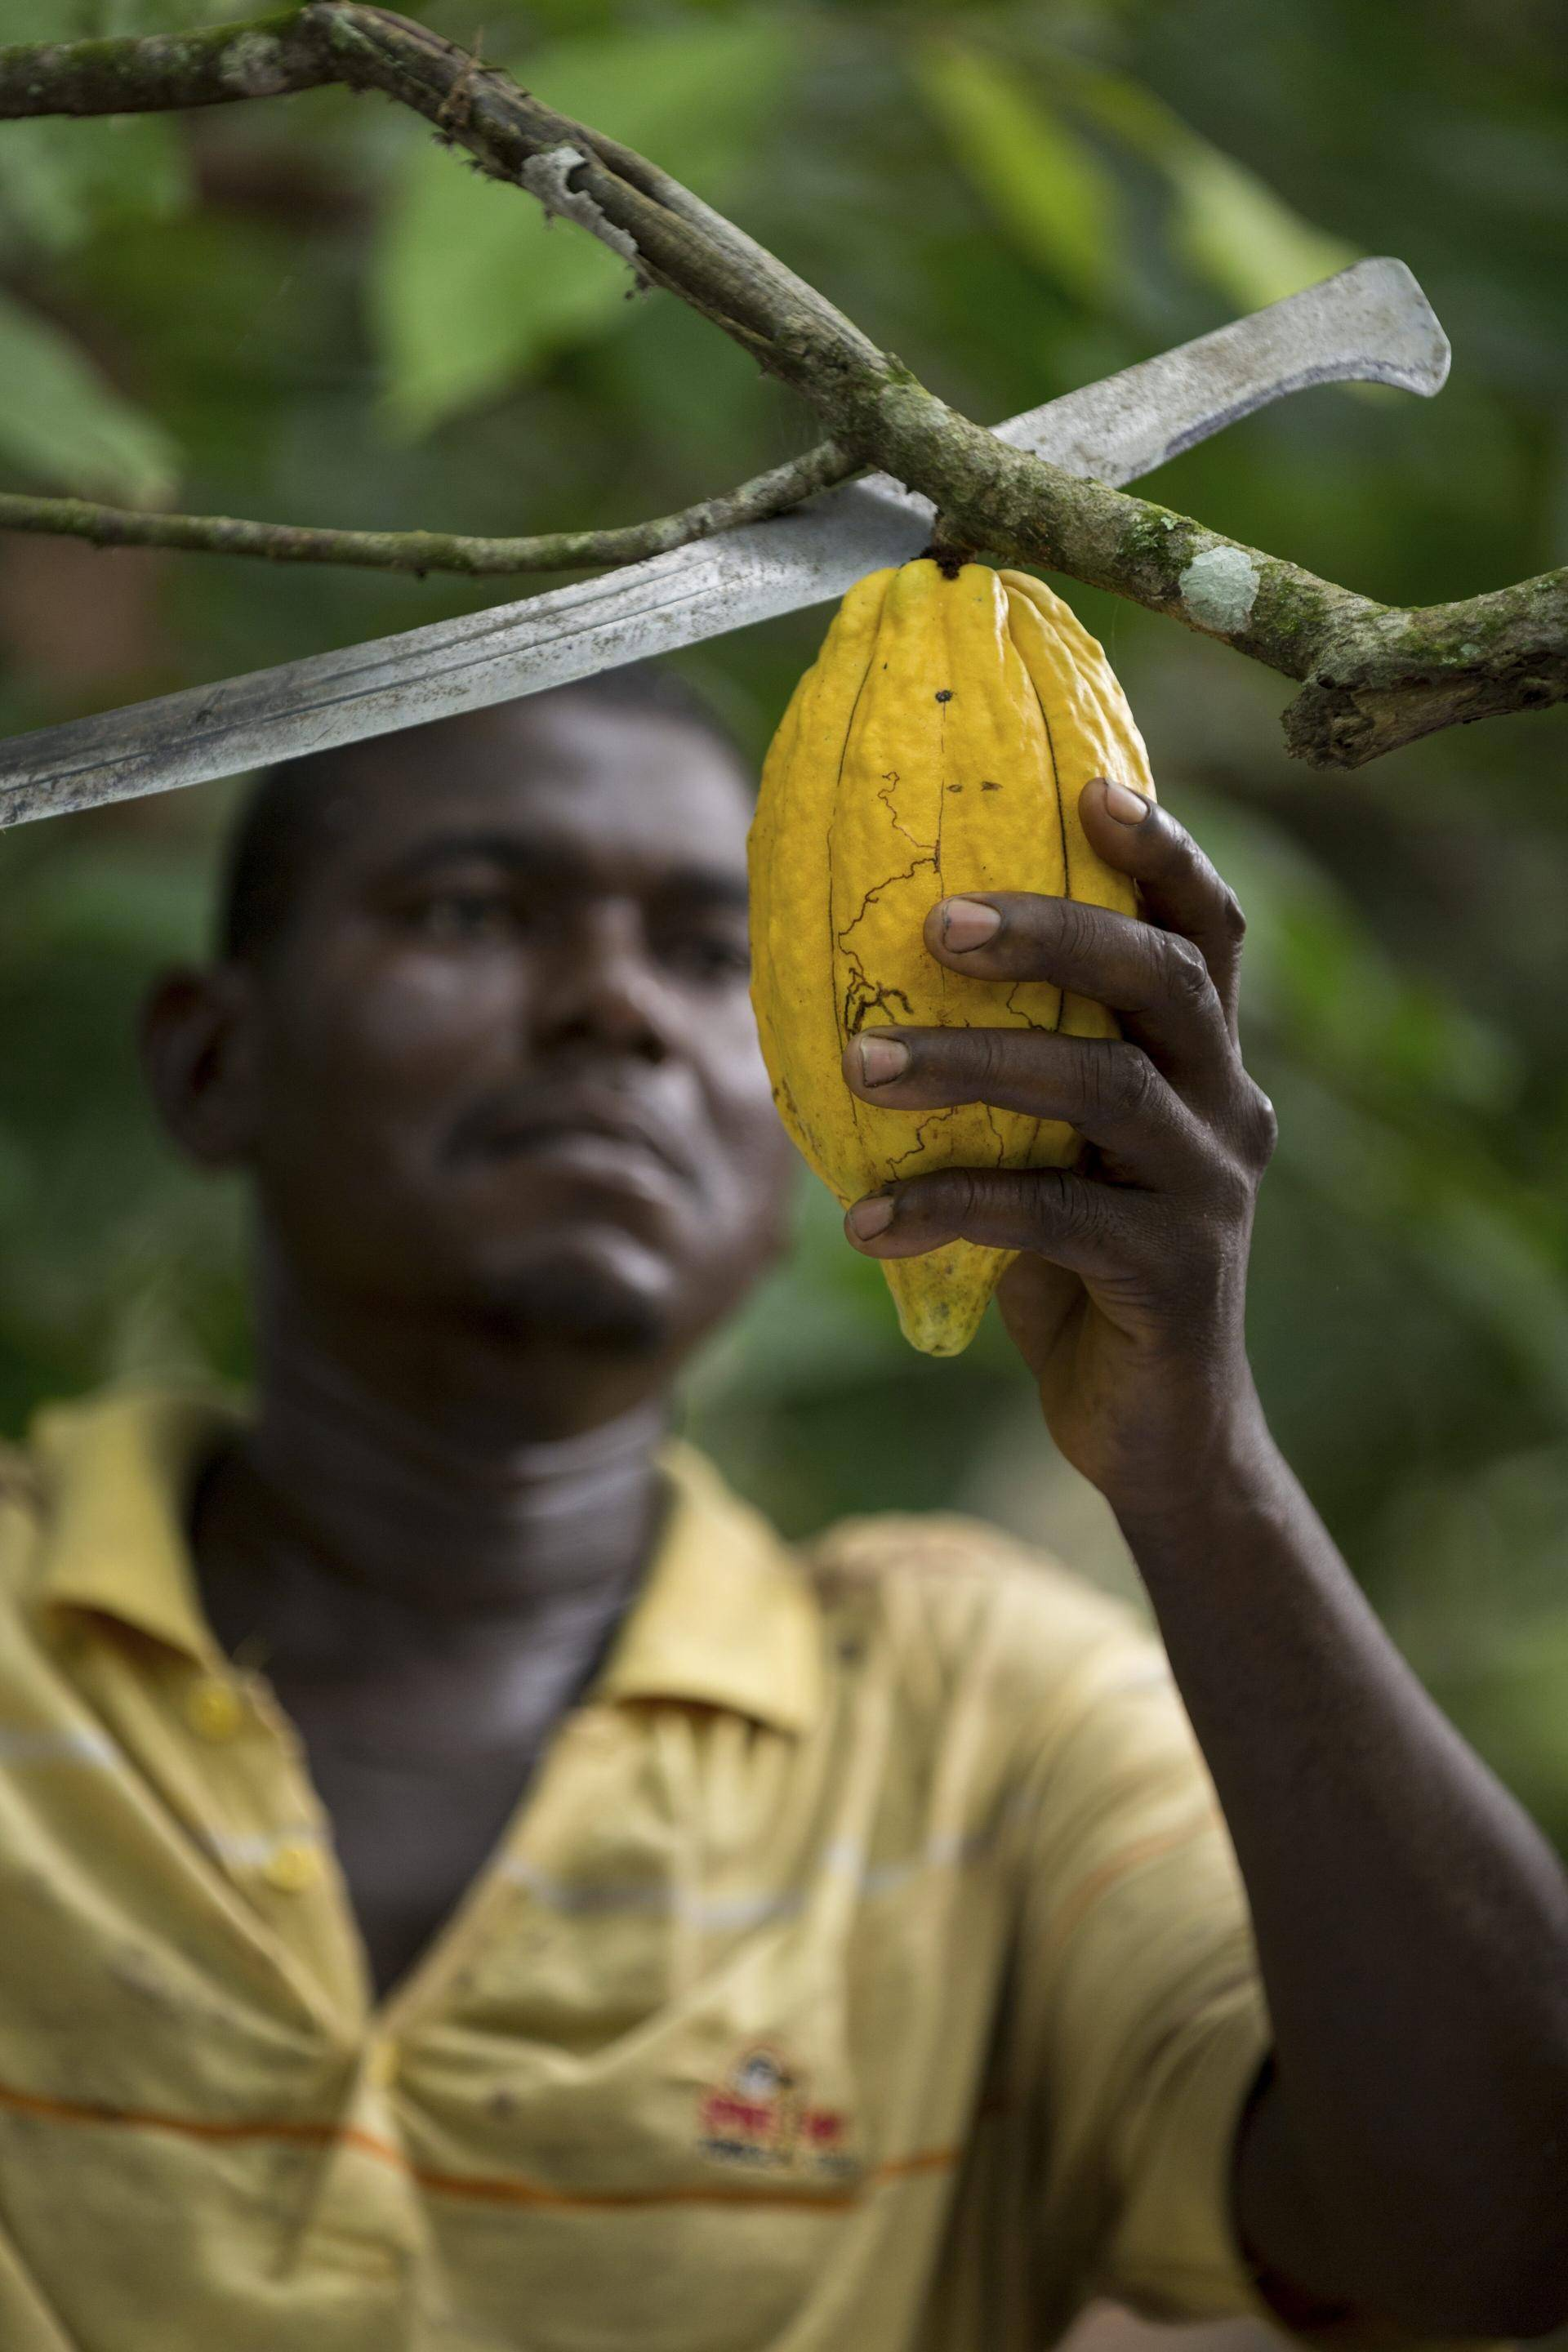 cocoa farmer in West Africa harvesting cocoa